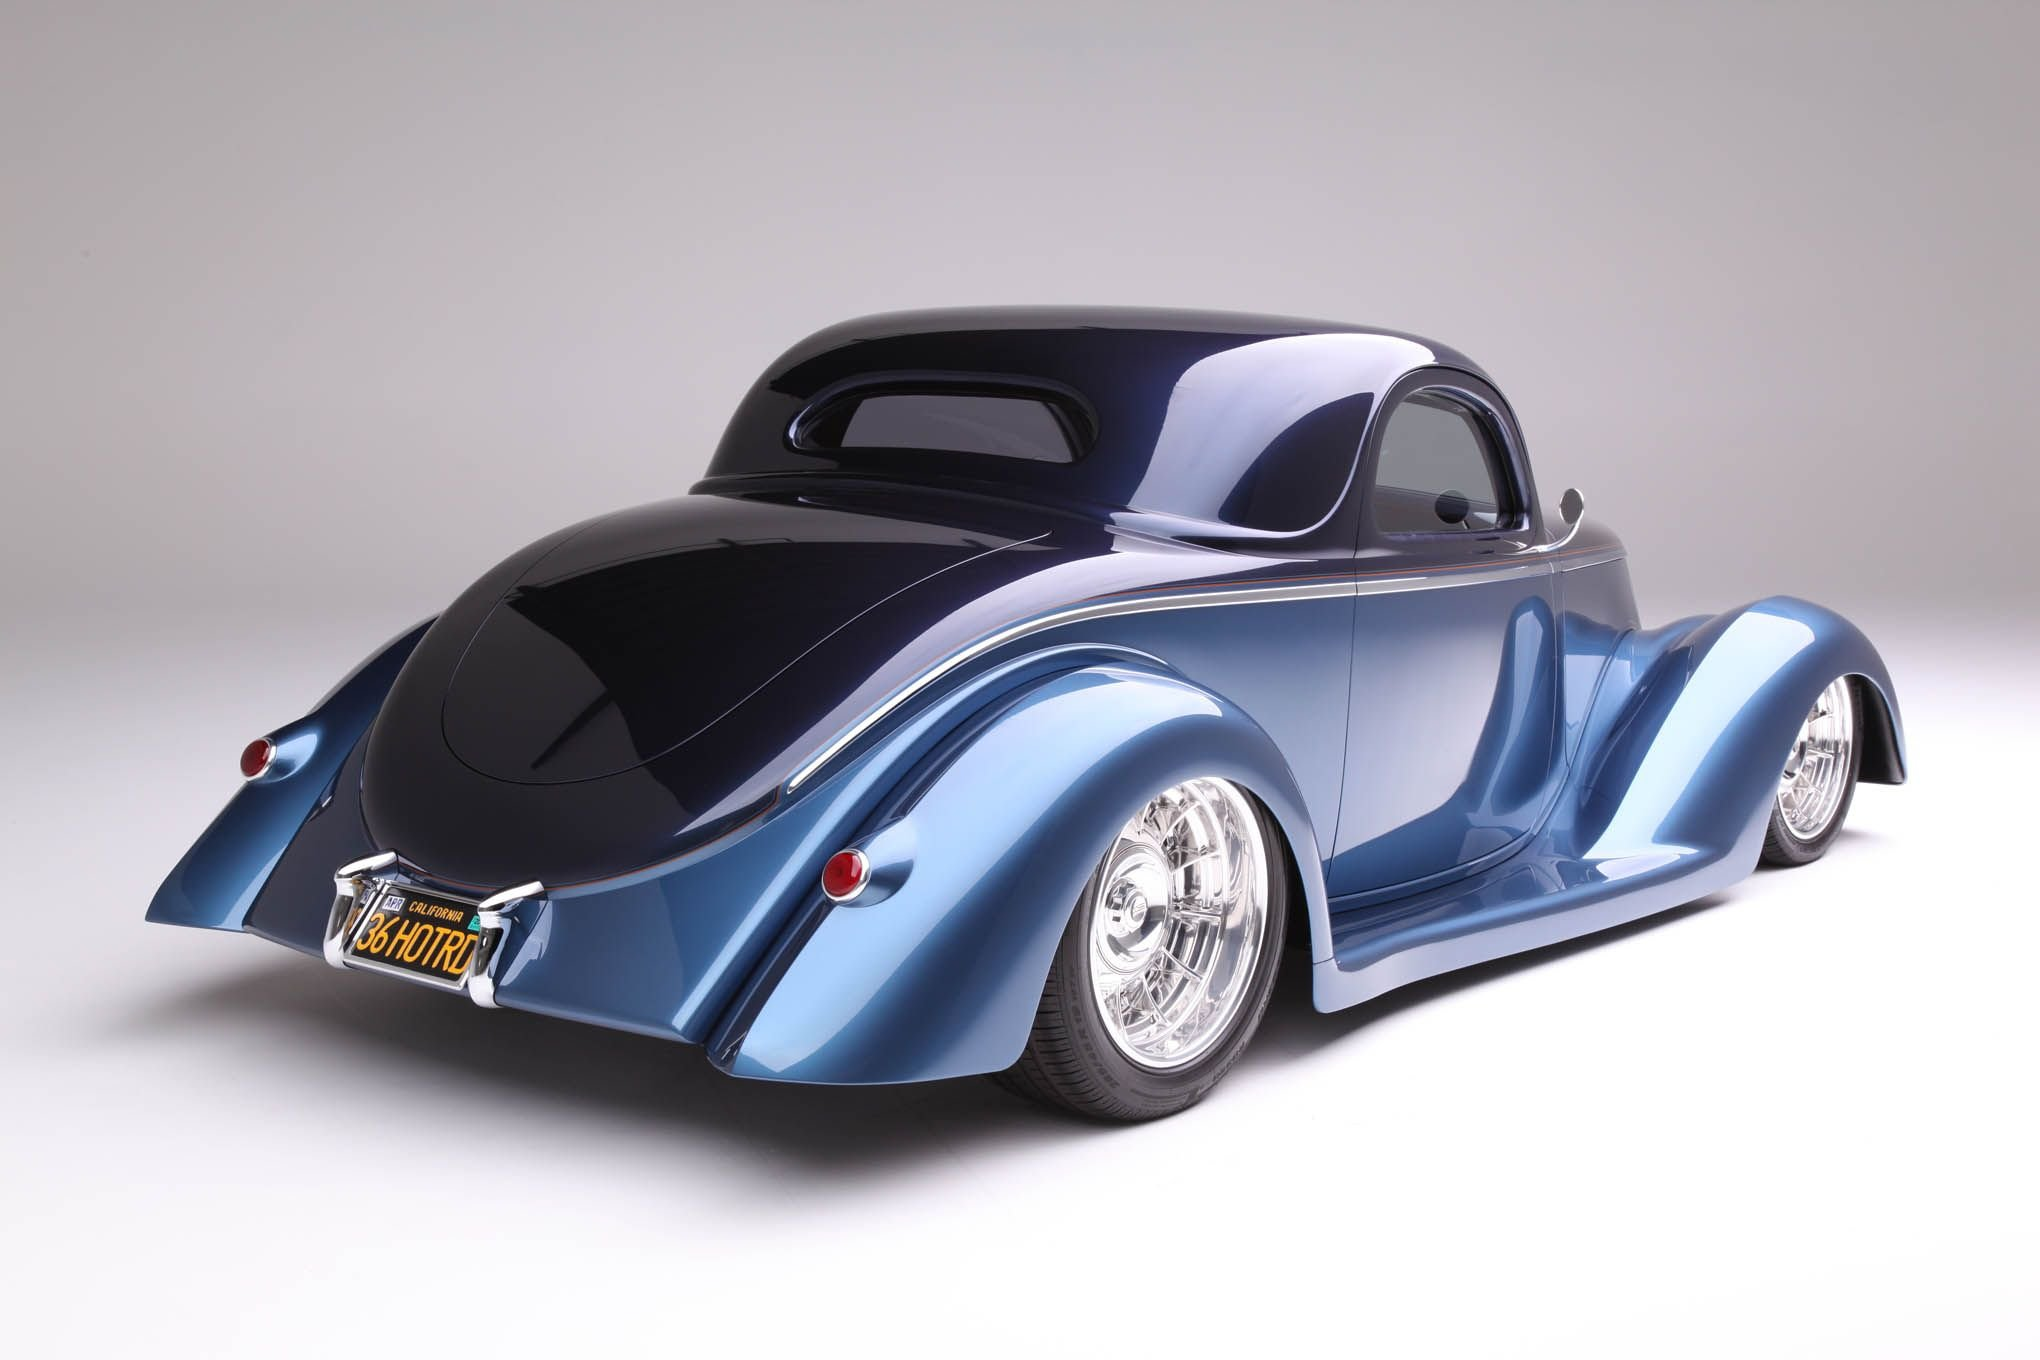 1936 ford coupe foose custom hot rod rods retro vintage wallpaper 2040x1360 864334 wallpaperup